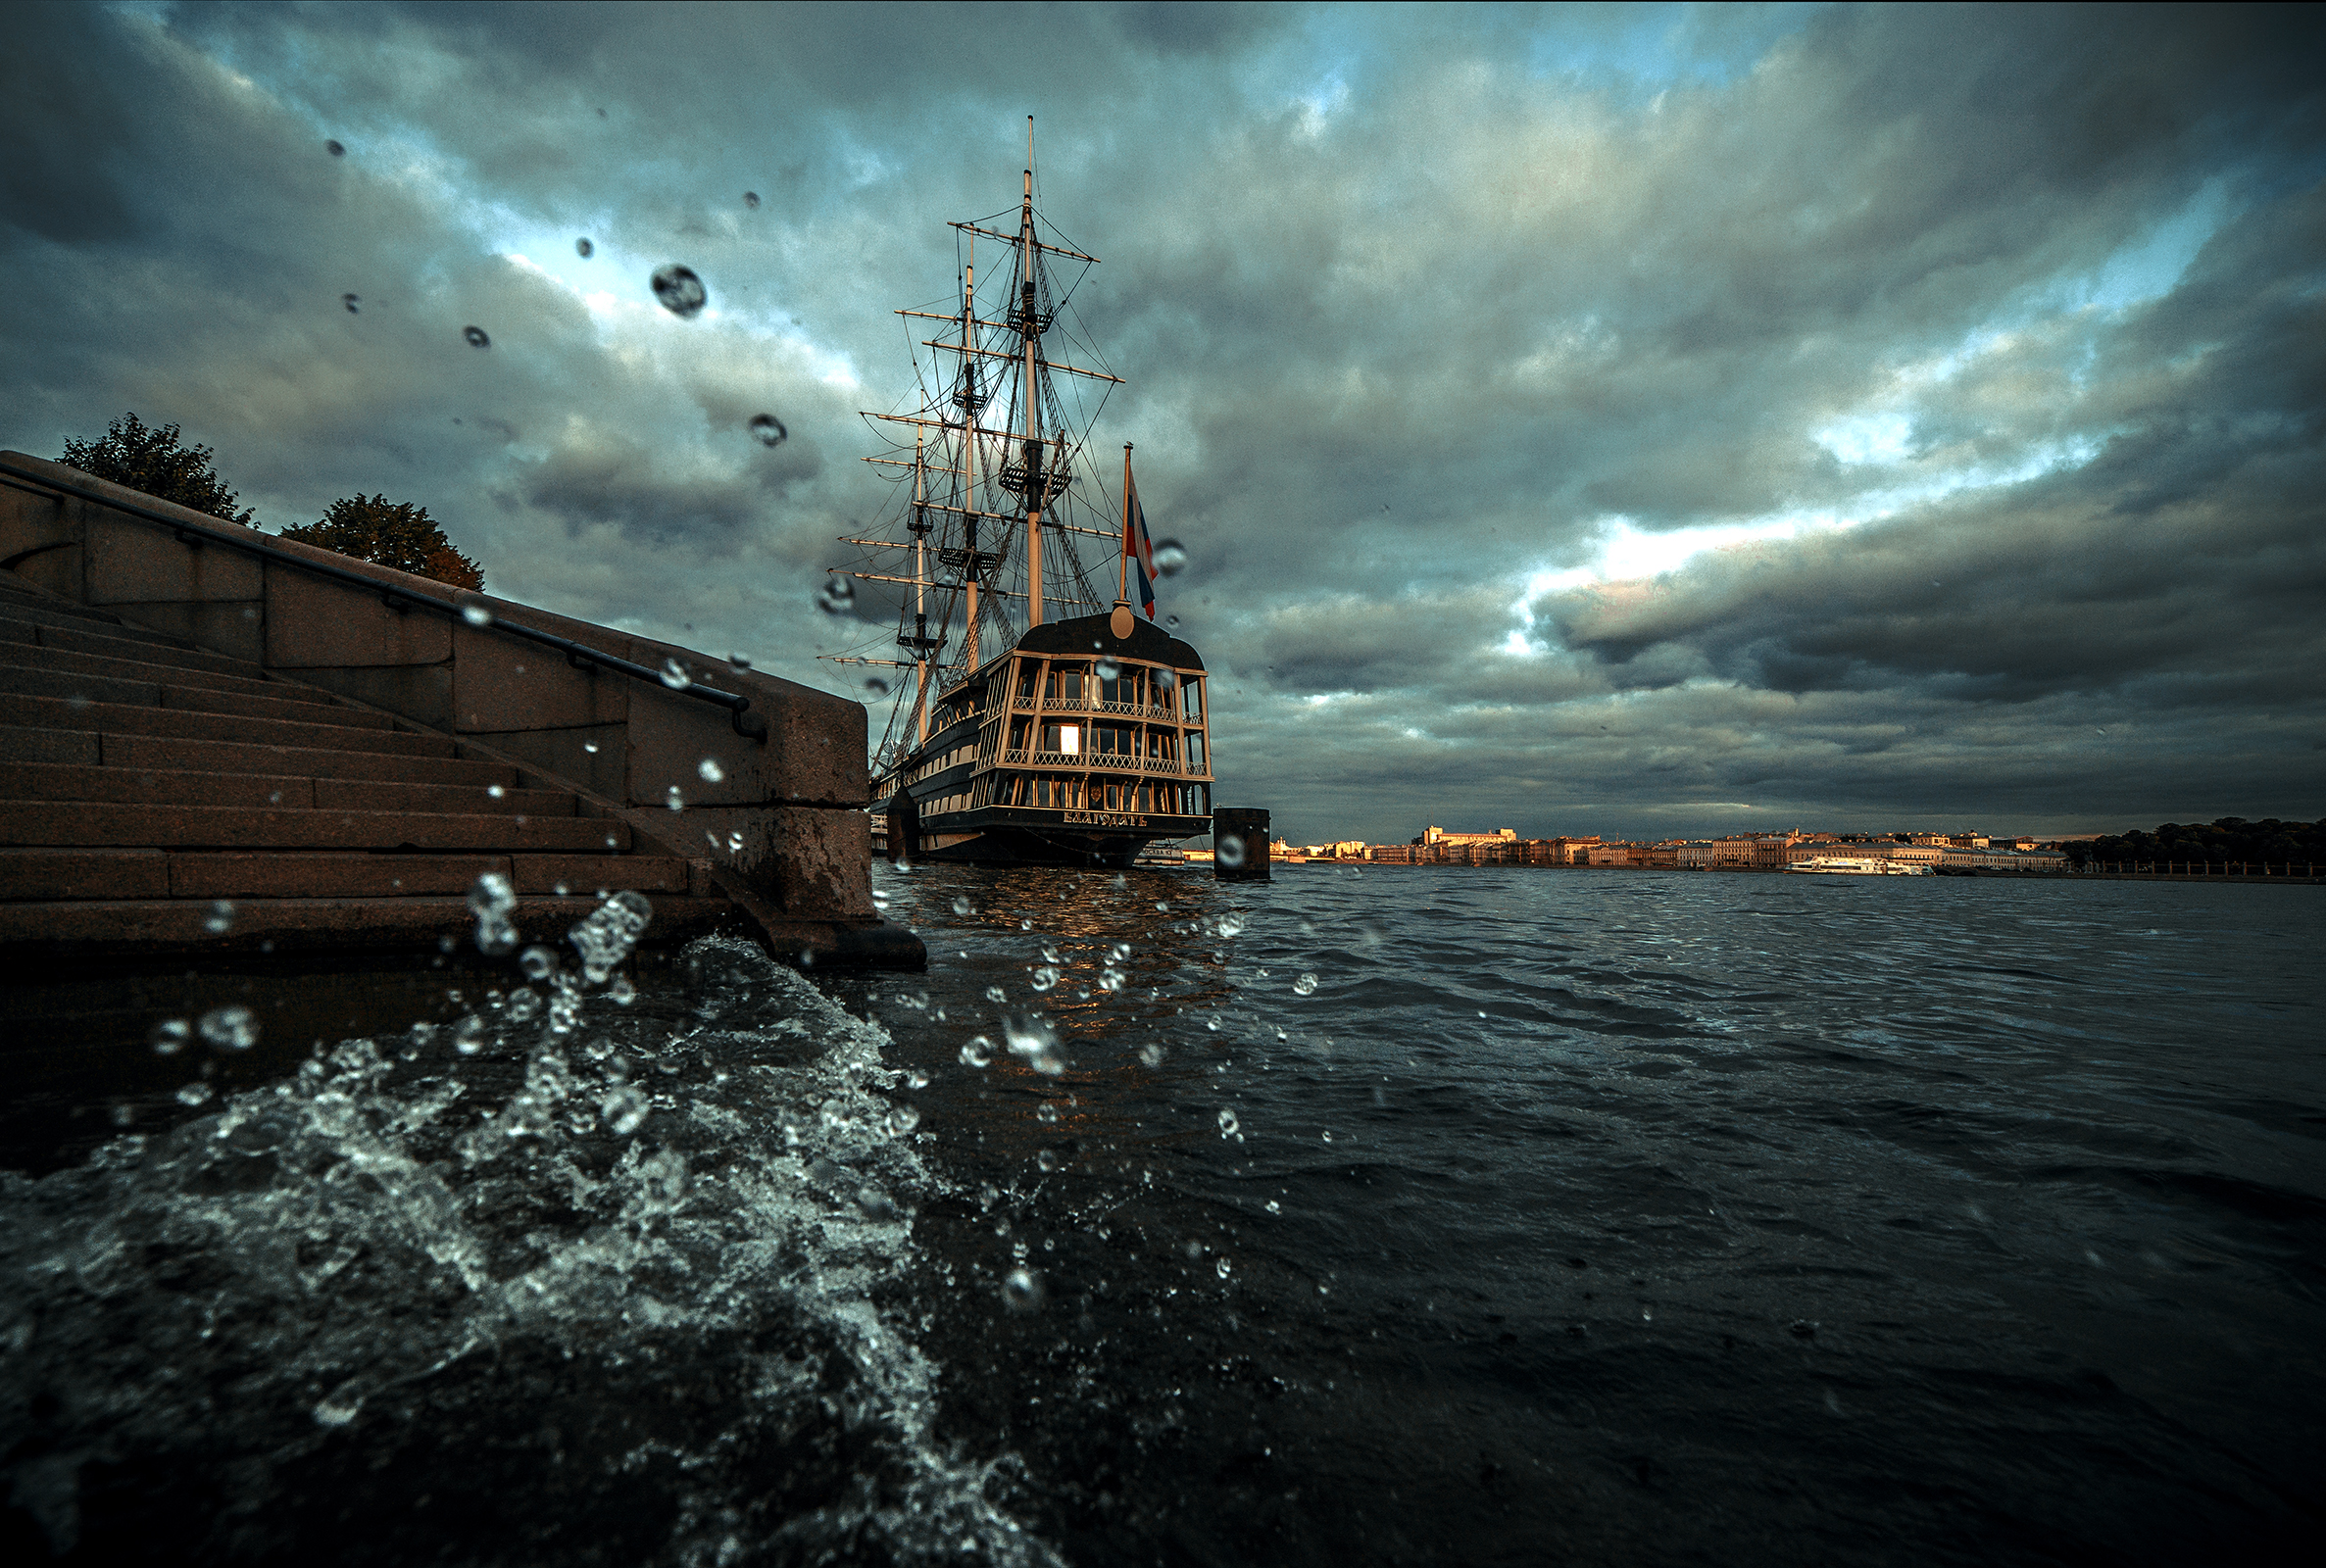 General 2373x1600 ship sailing ship clouds splashes water splash photography water water drops cityscape St. Petersburg Russia river vehicle